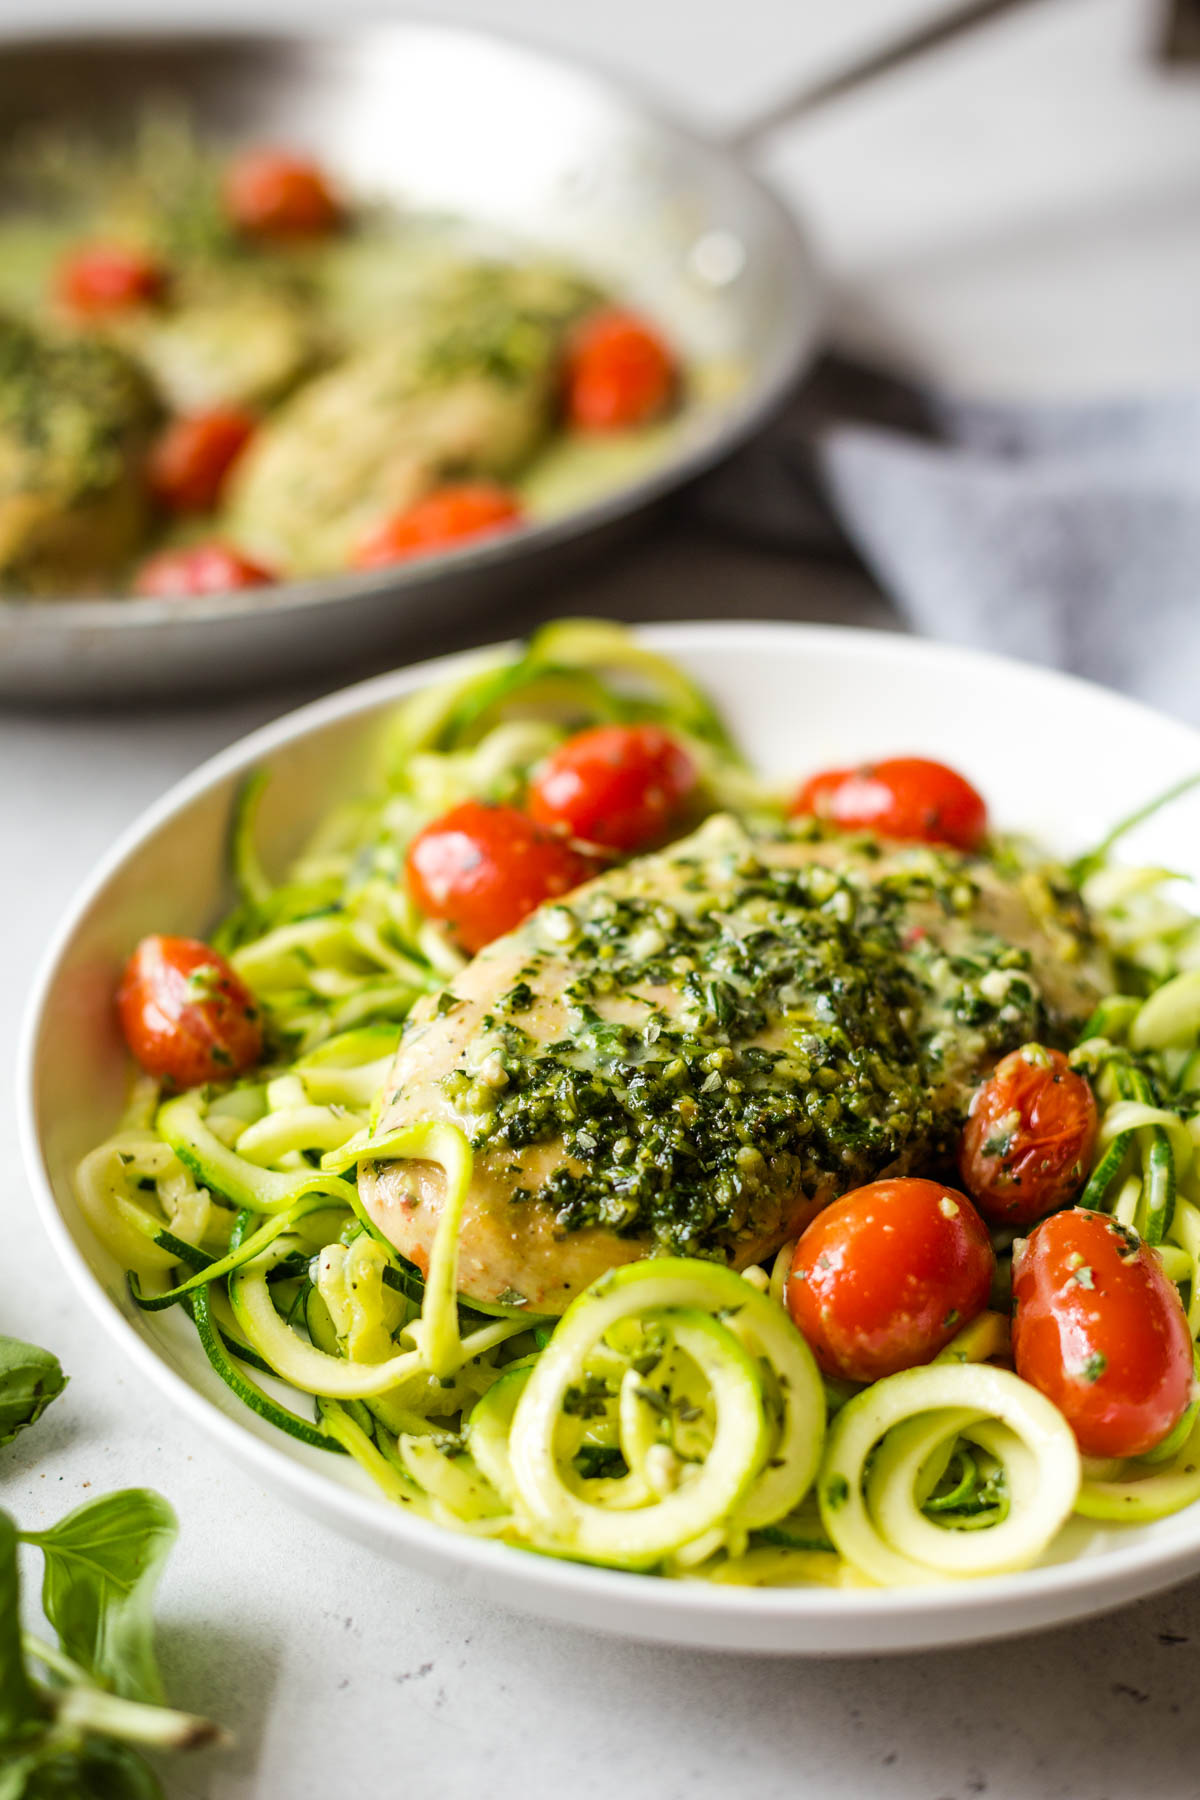 plate with zucchini noodles, tomatoes, and pesto chicken